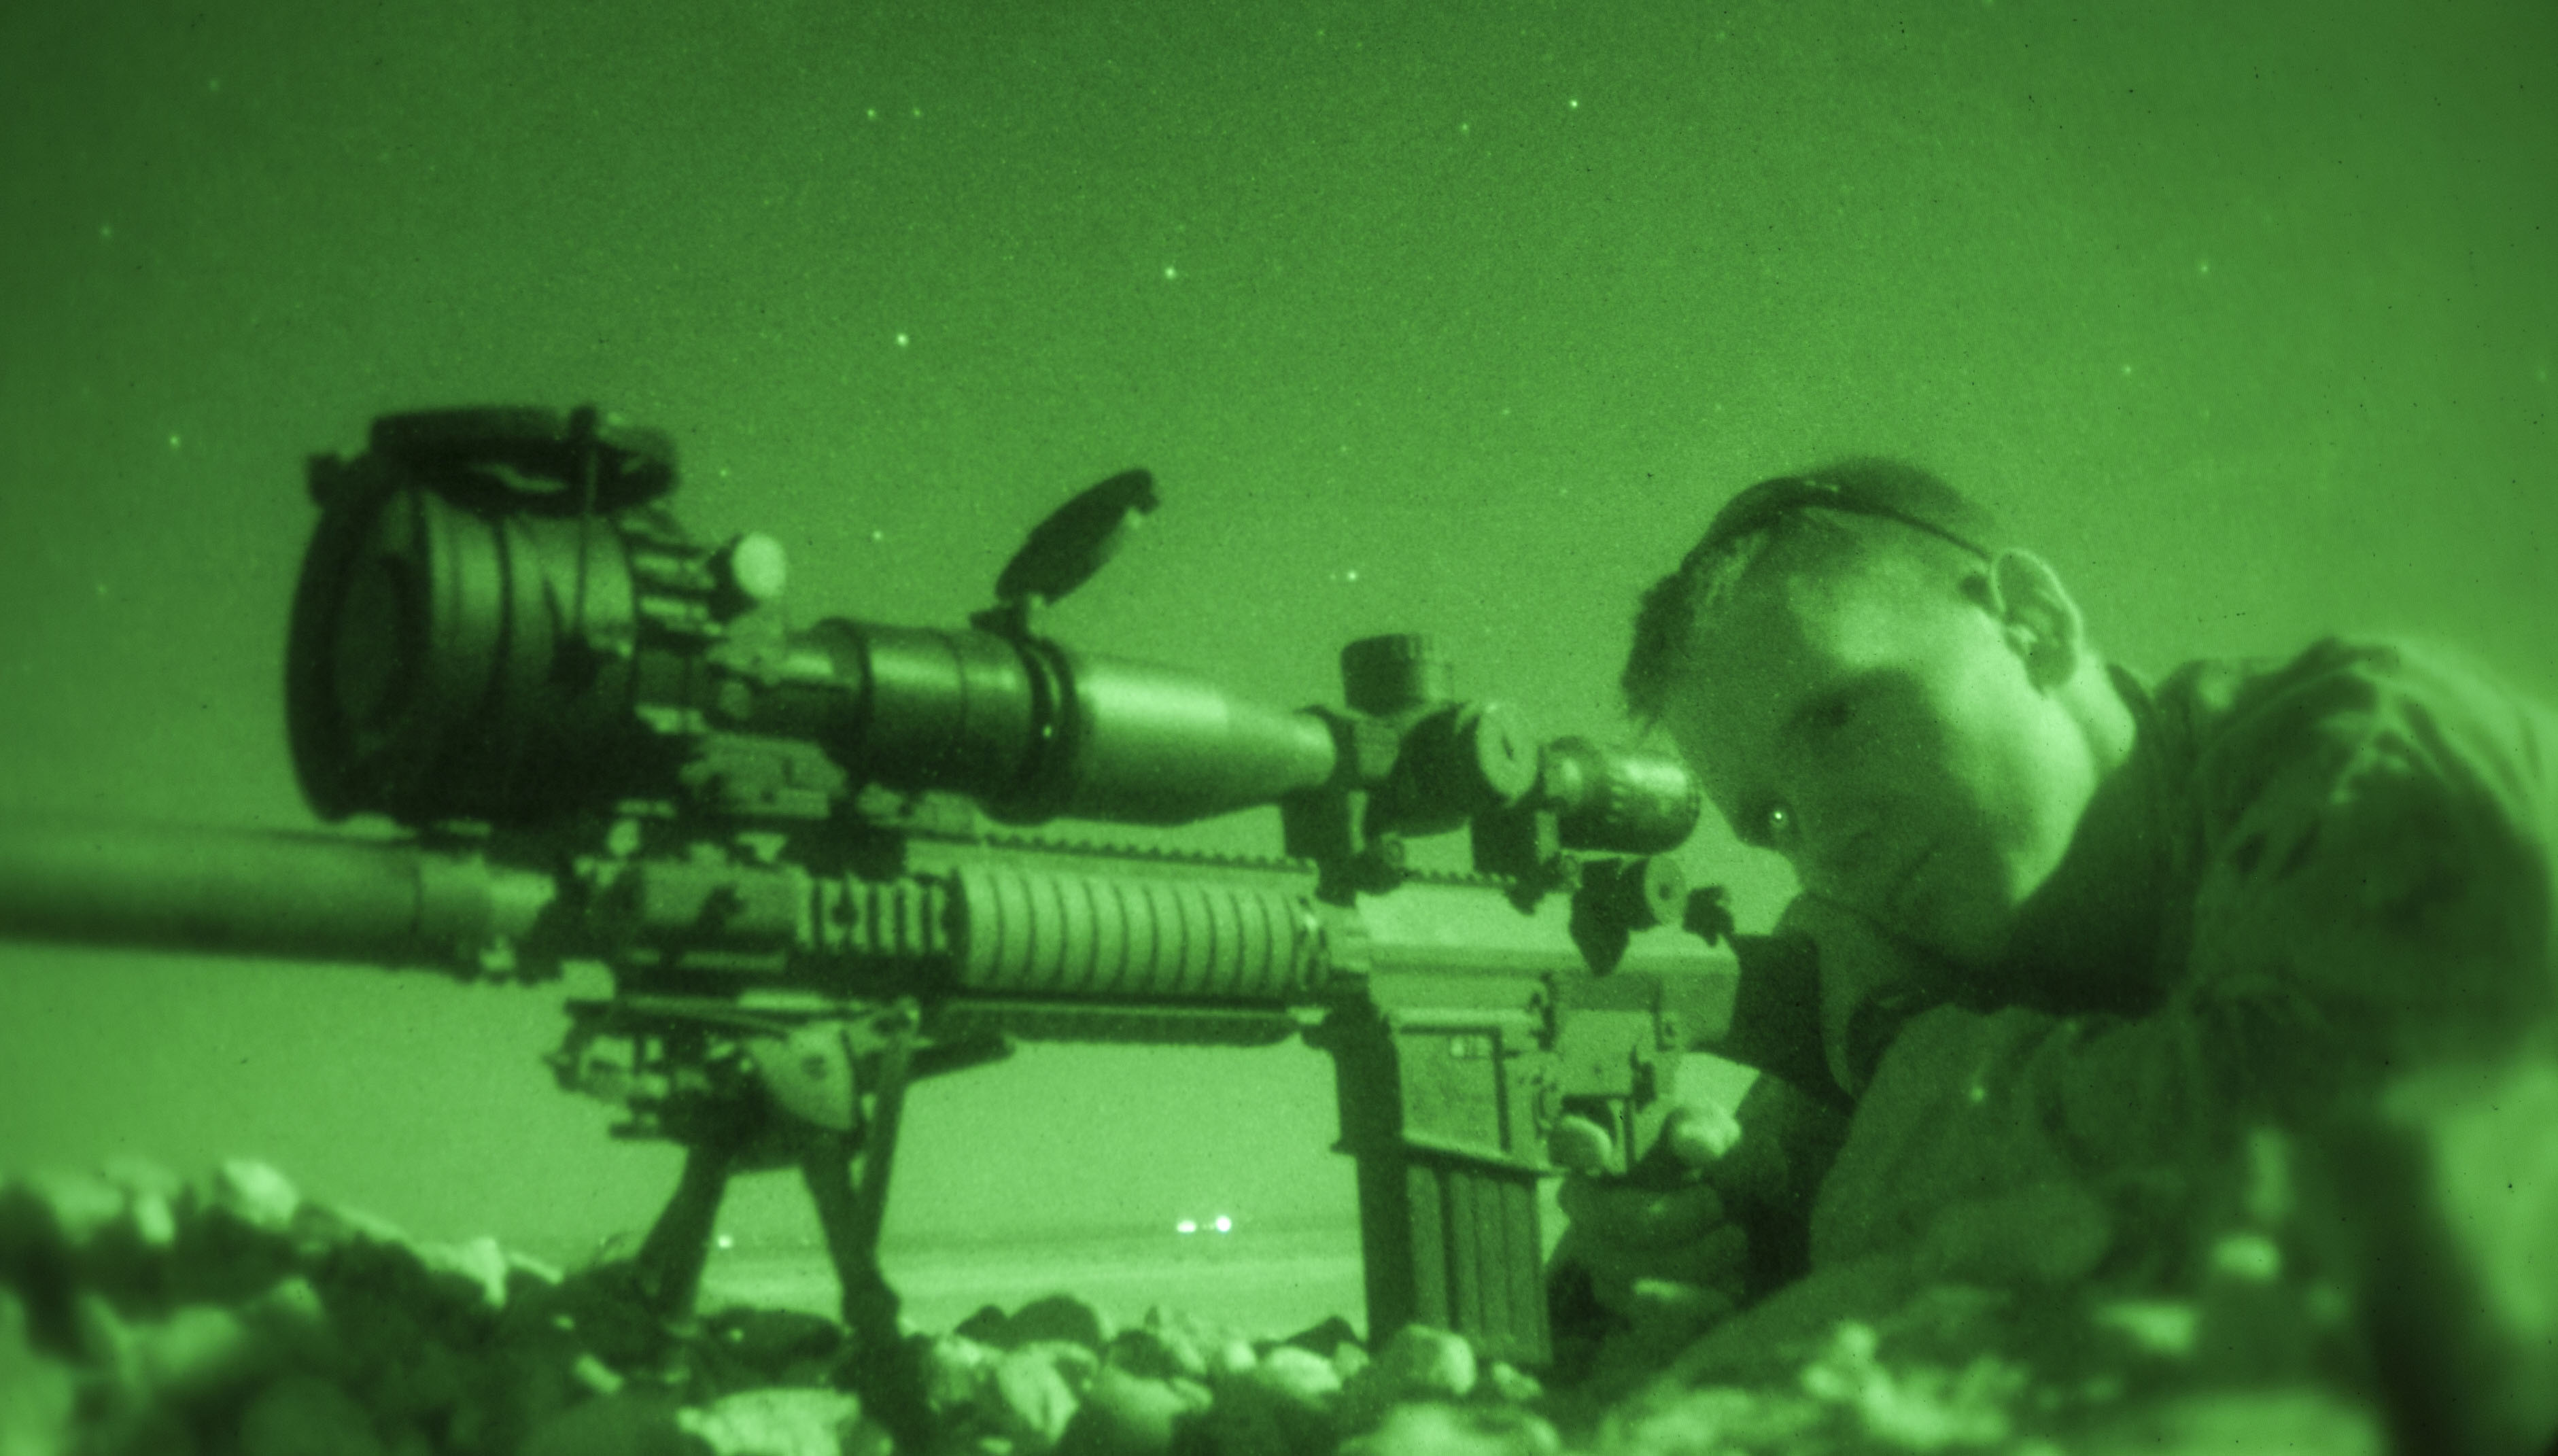 File:U.S._Marine_Corps_Sgt._Christopher_Stone,_a_combat_cameraman_assigned_to_the_26th_Marine_Expeditionary_Unit_(MEU),_fires_an_M110_semiautomatic_sniper_system_during_a_nighttime_live Fire_exercise_June_21,_2013_130621 M SO289 011 on Central Unit